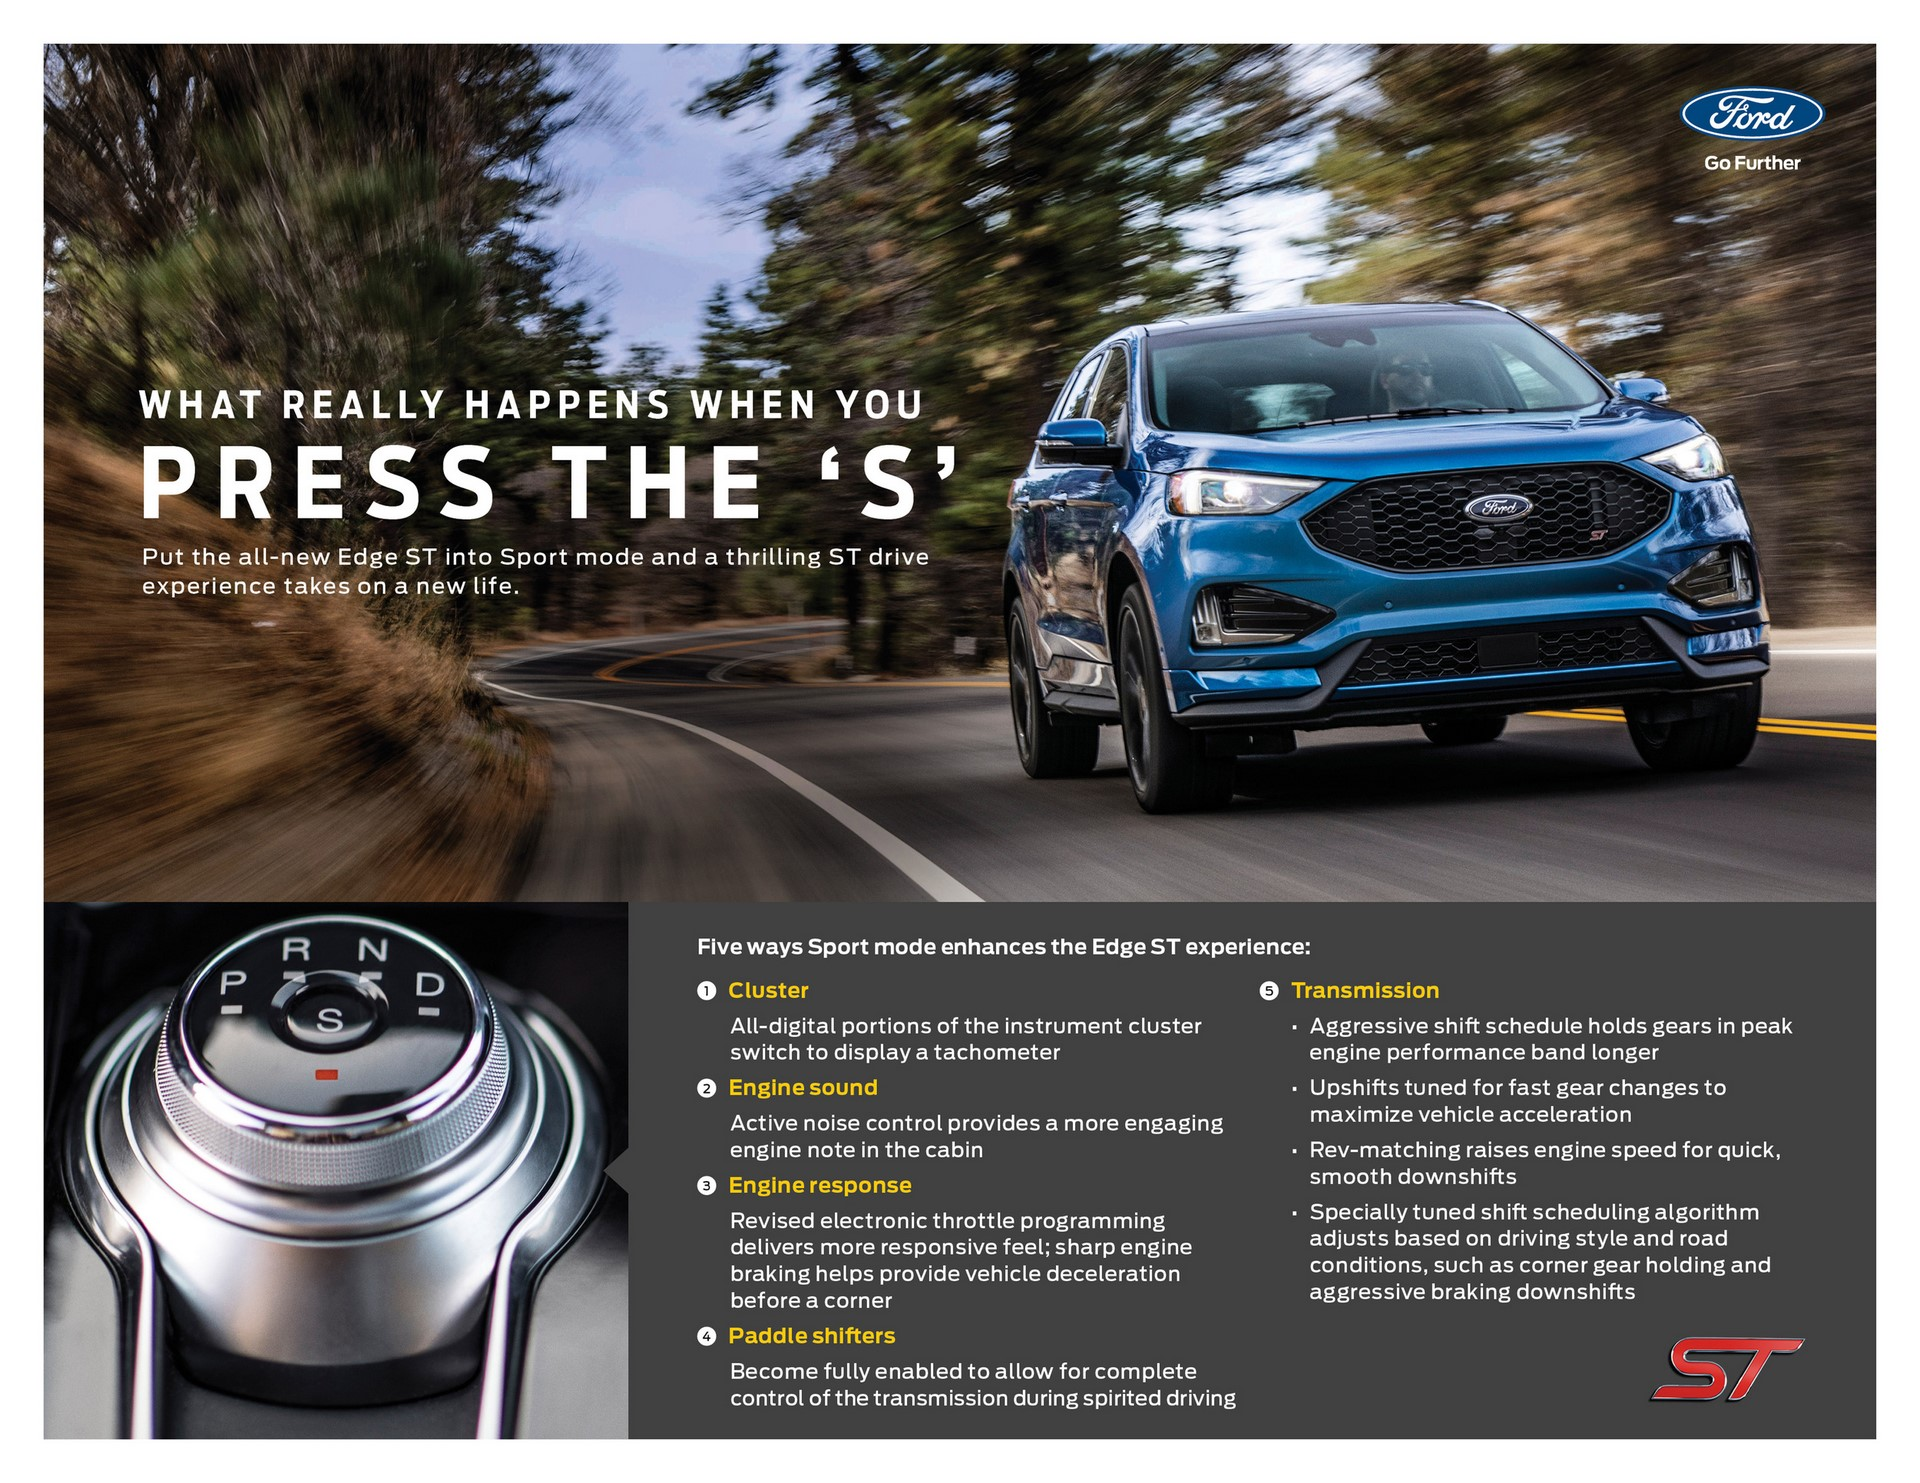 2019-ford-edge-st-010-1